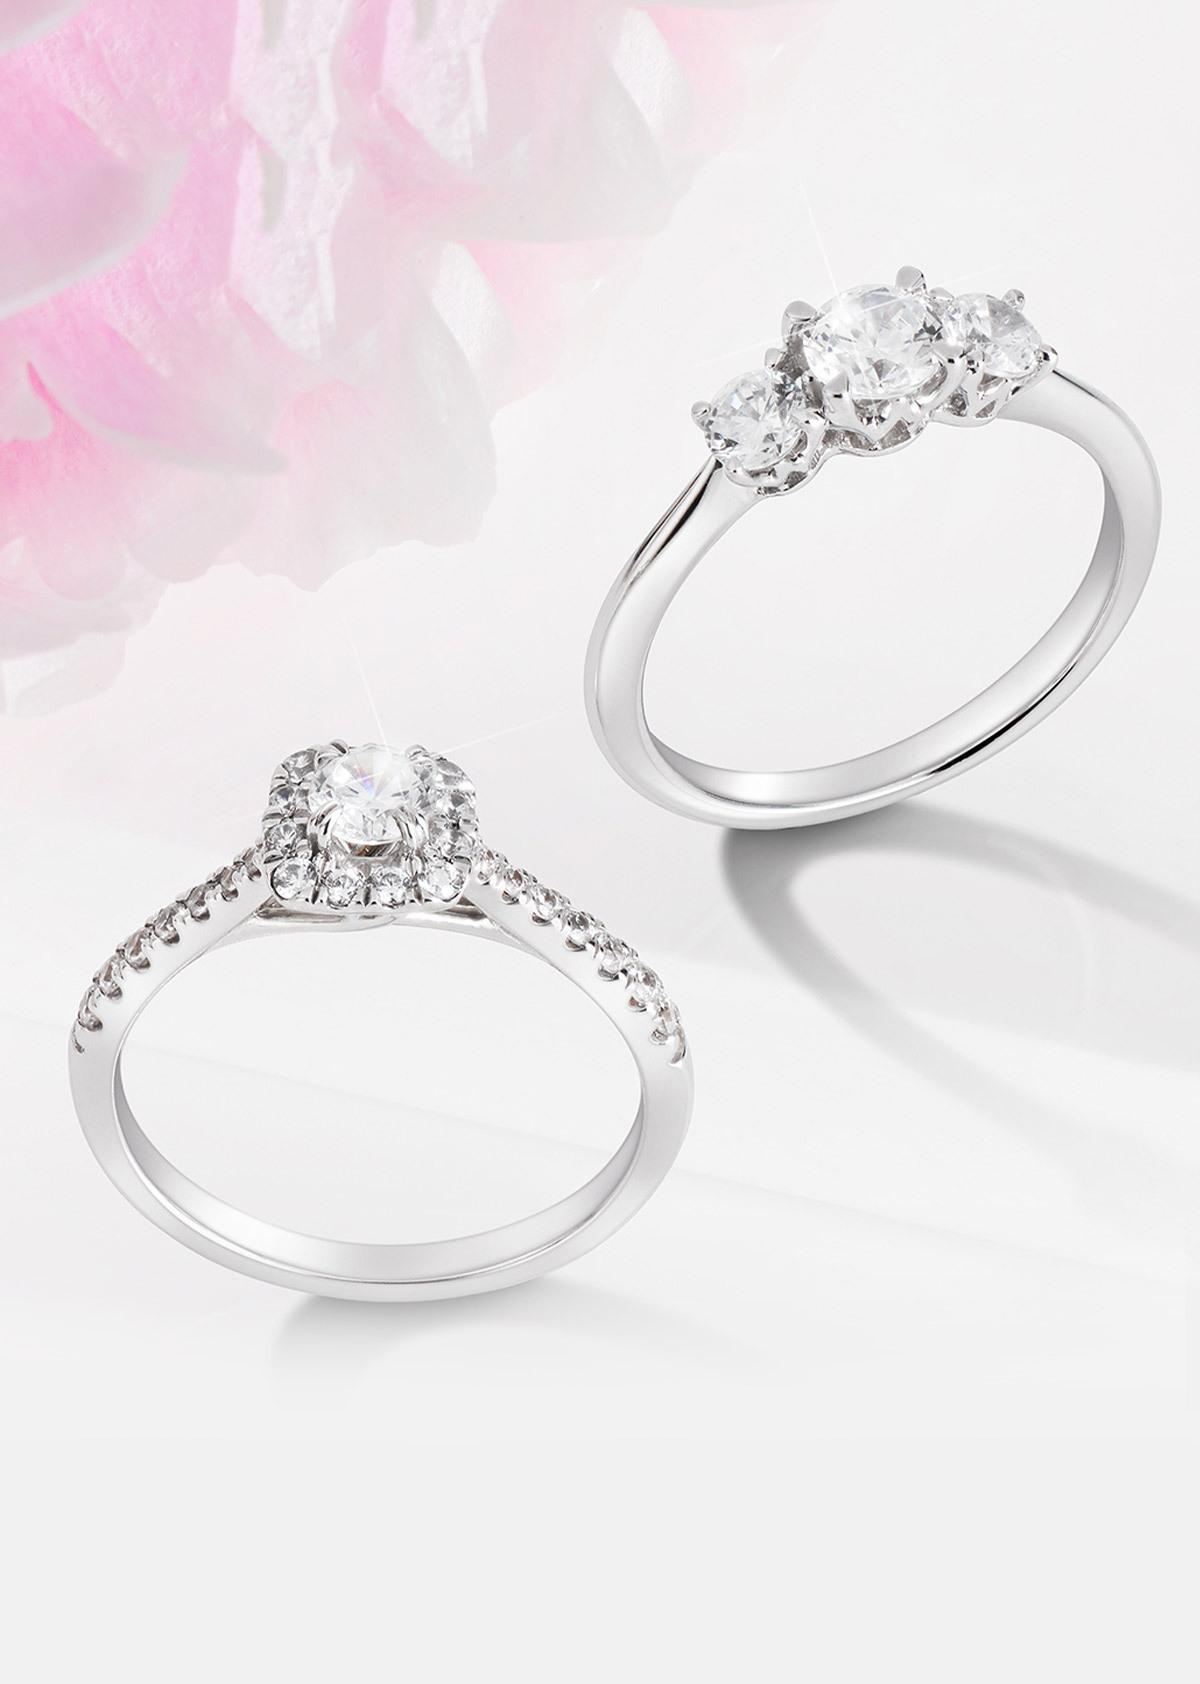 Two diamond engagement rings